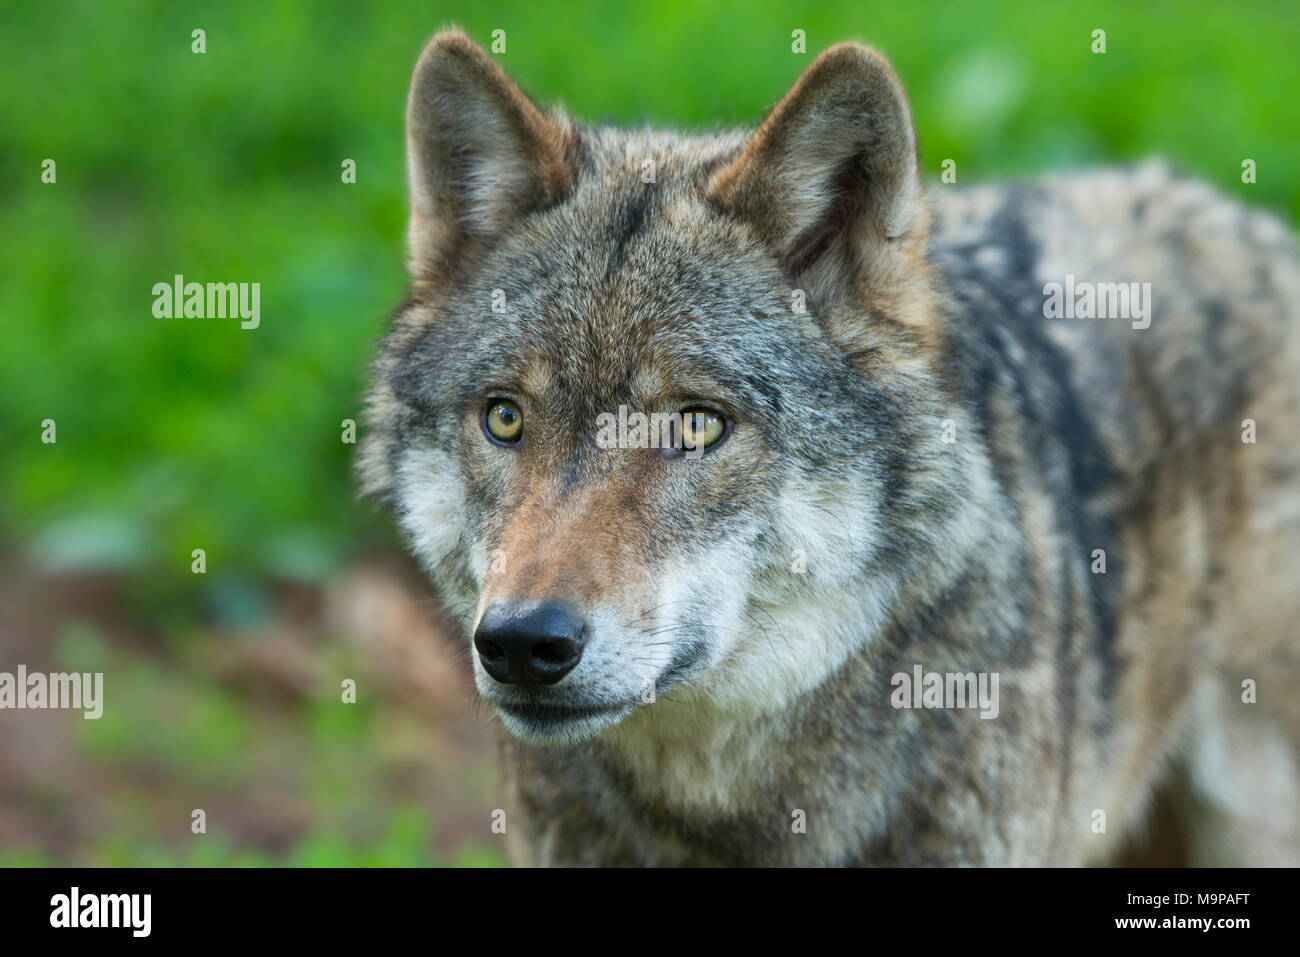 Gray wolf (Canis lupus), animal portrait, captive, Germany - Stock Image